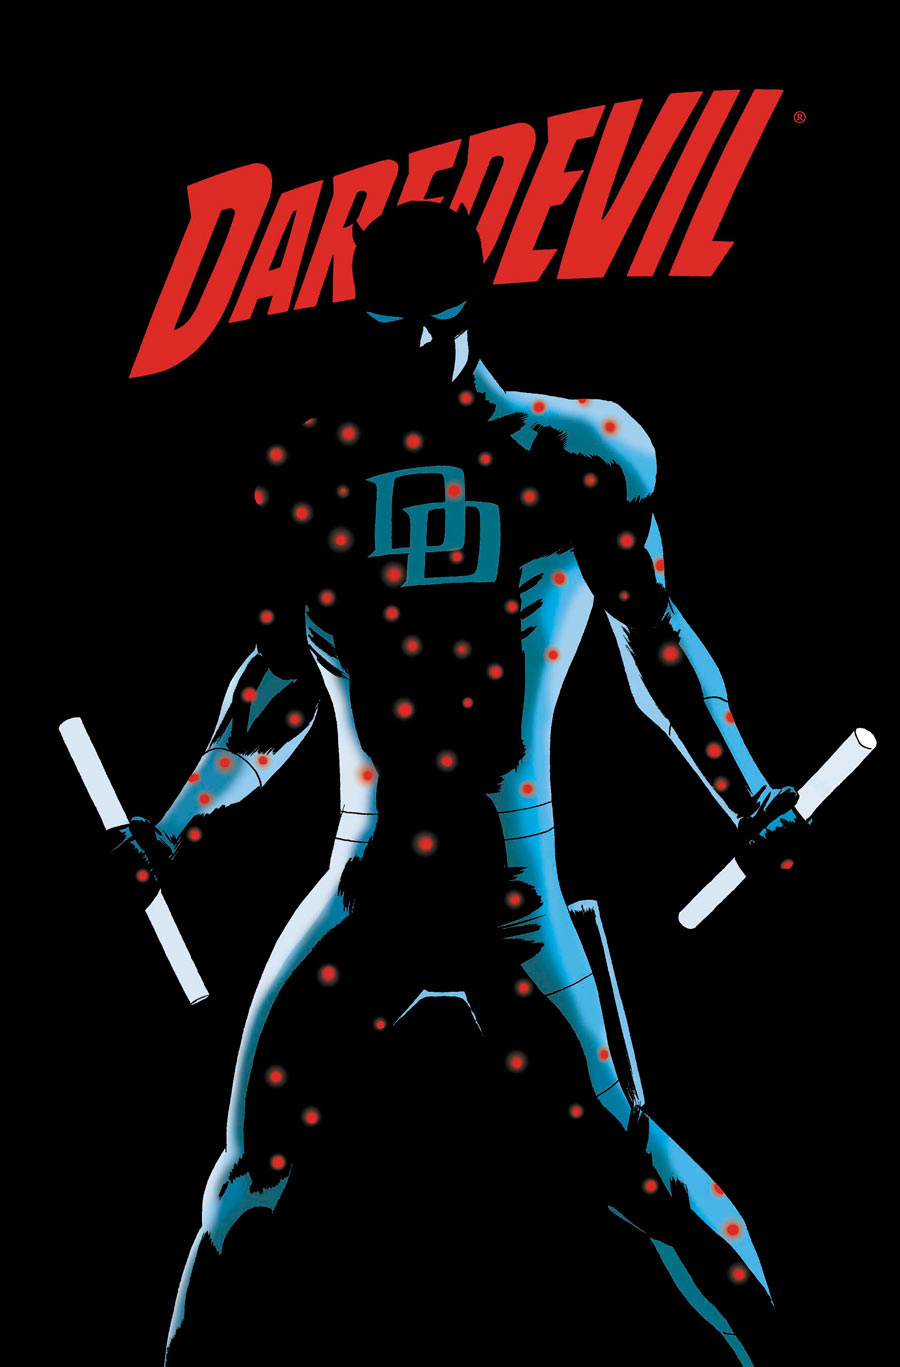 Daredevil promotional art